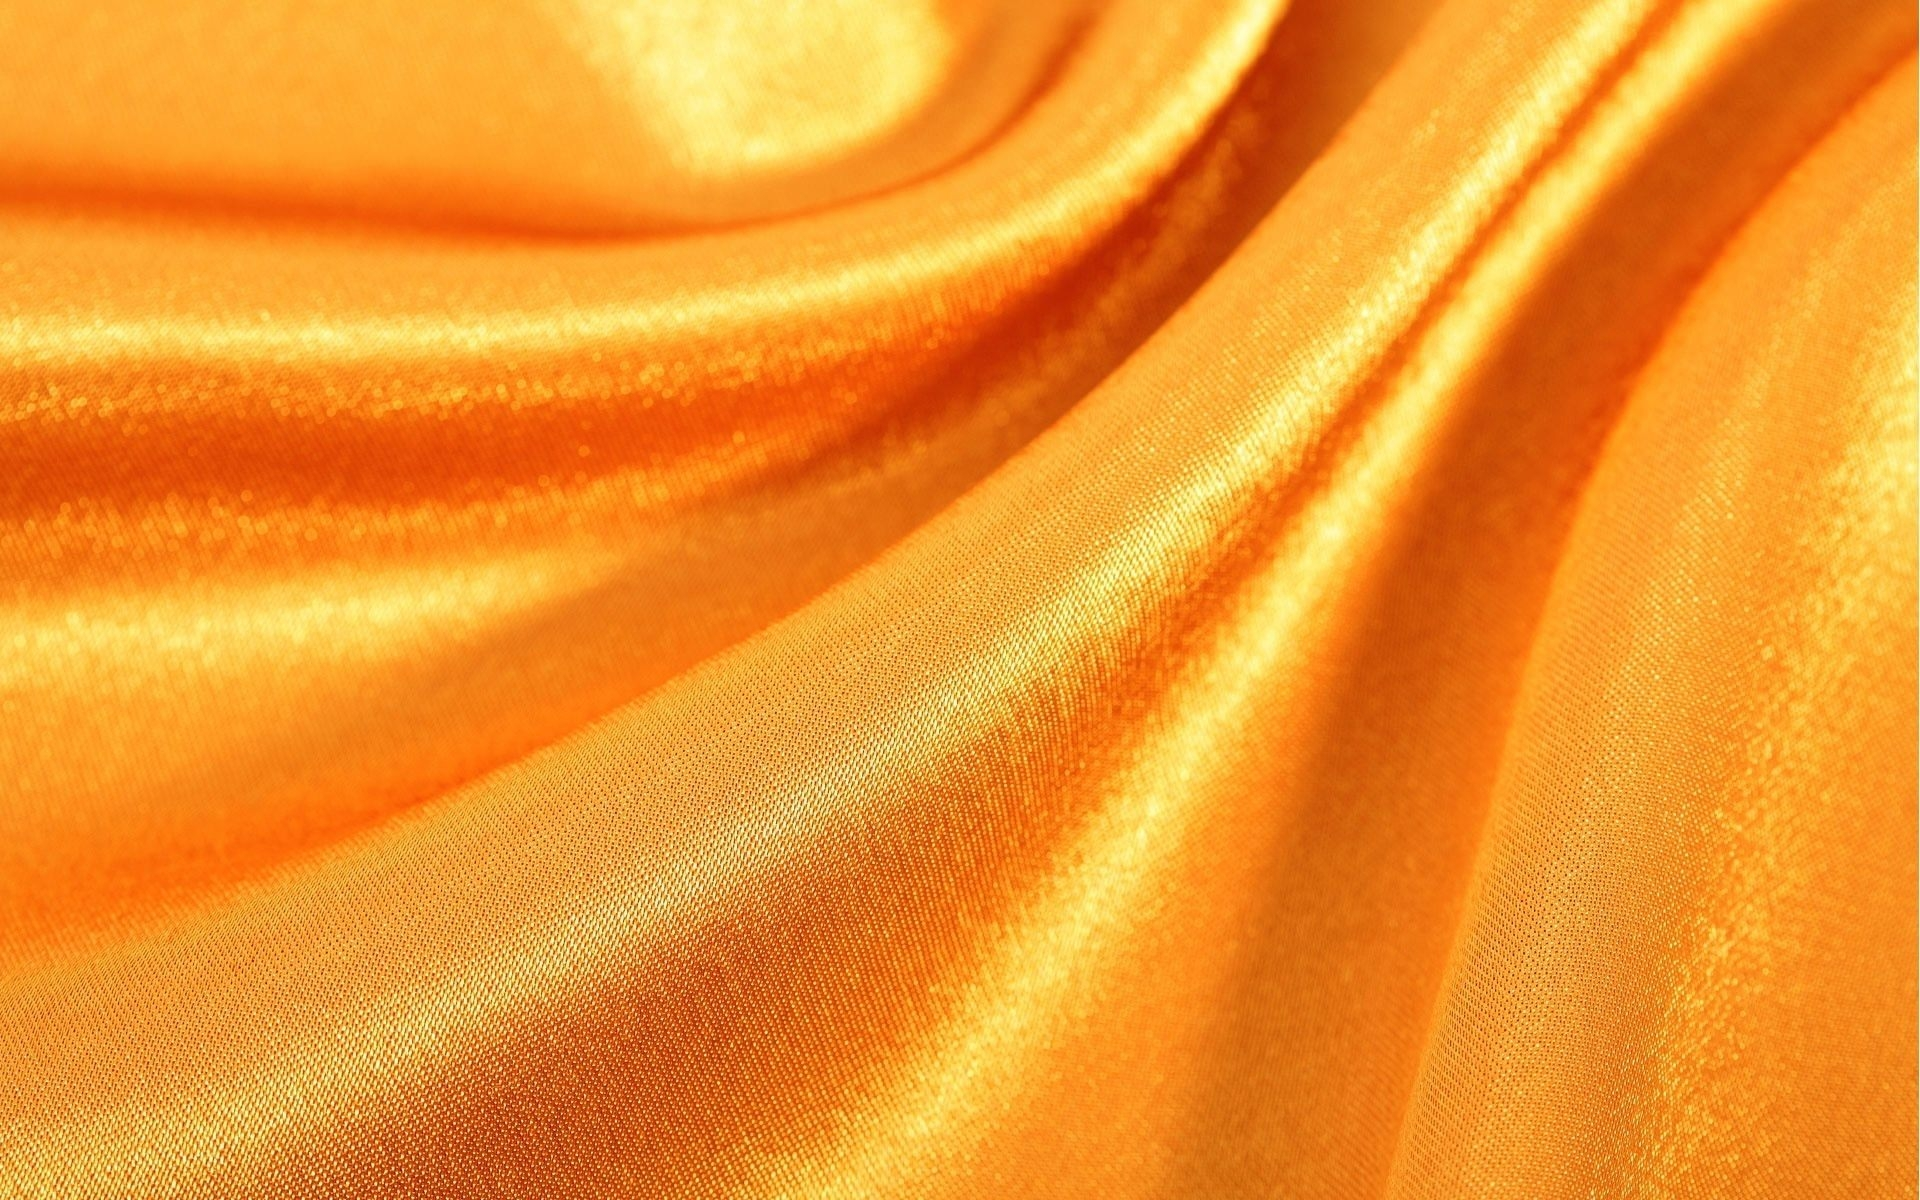 how to create satin texture in photoshop